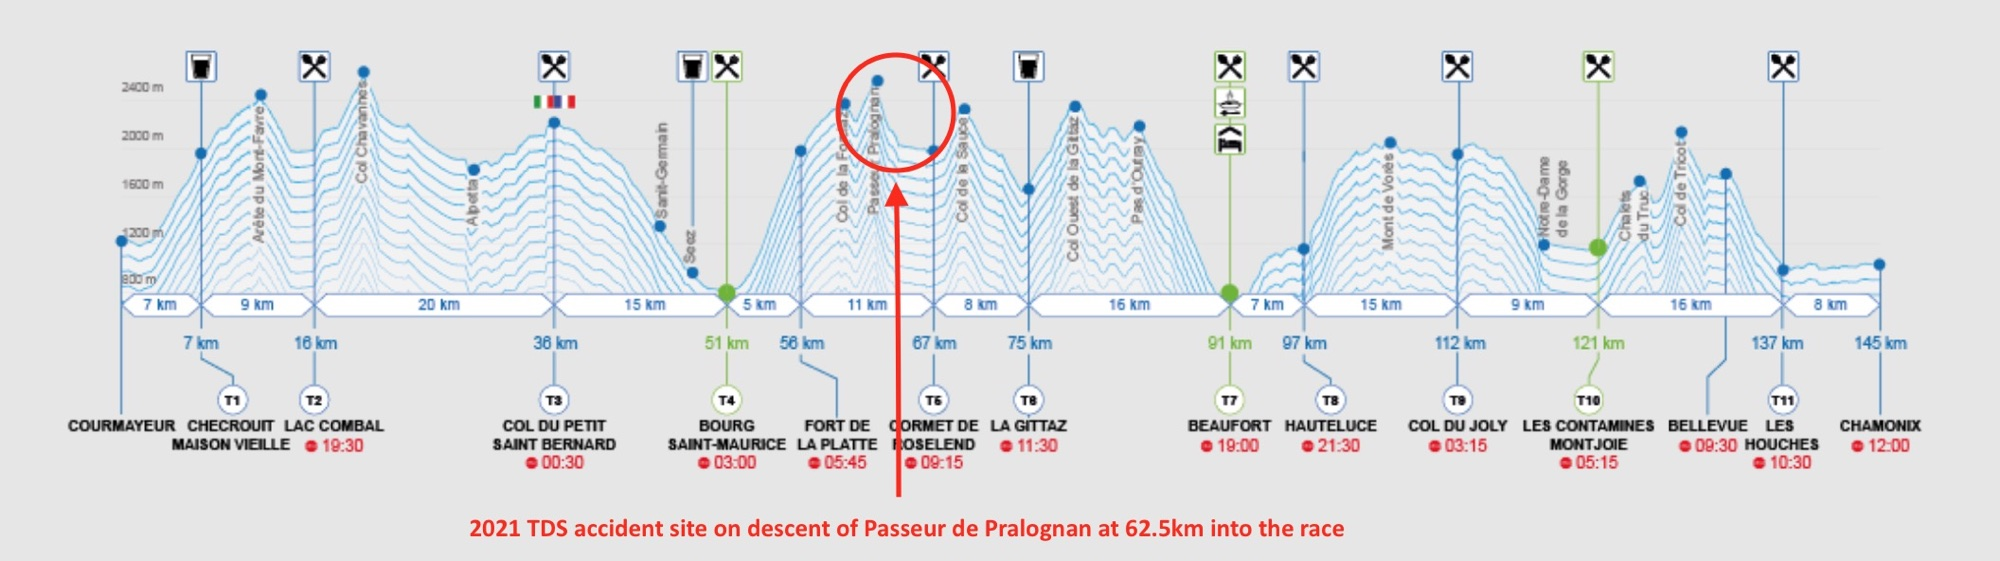 2021 TDS - Course profile with accident site labeled